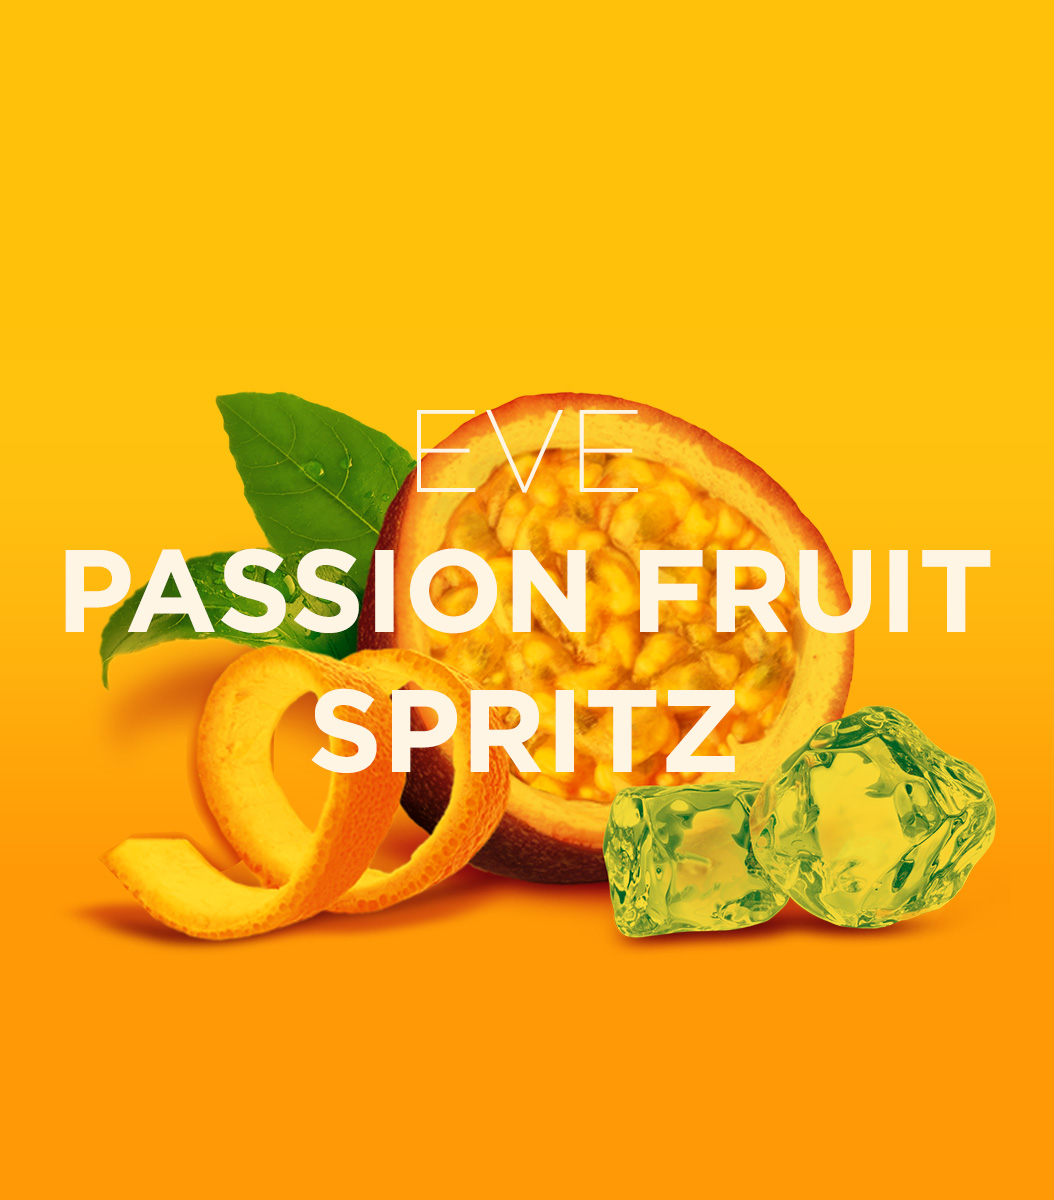 Passionfruit colored